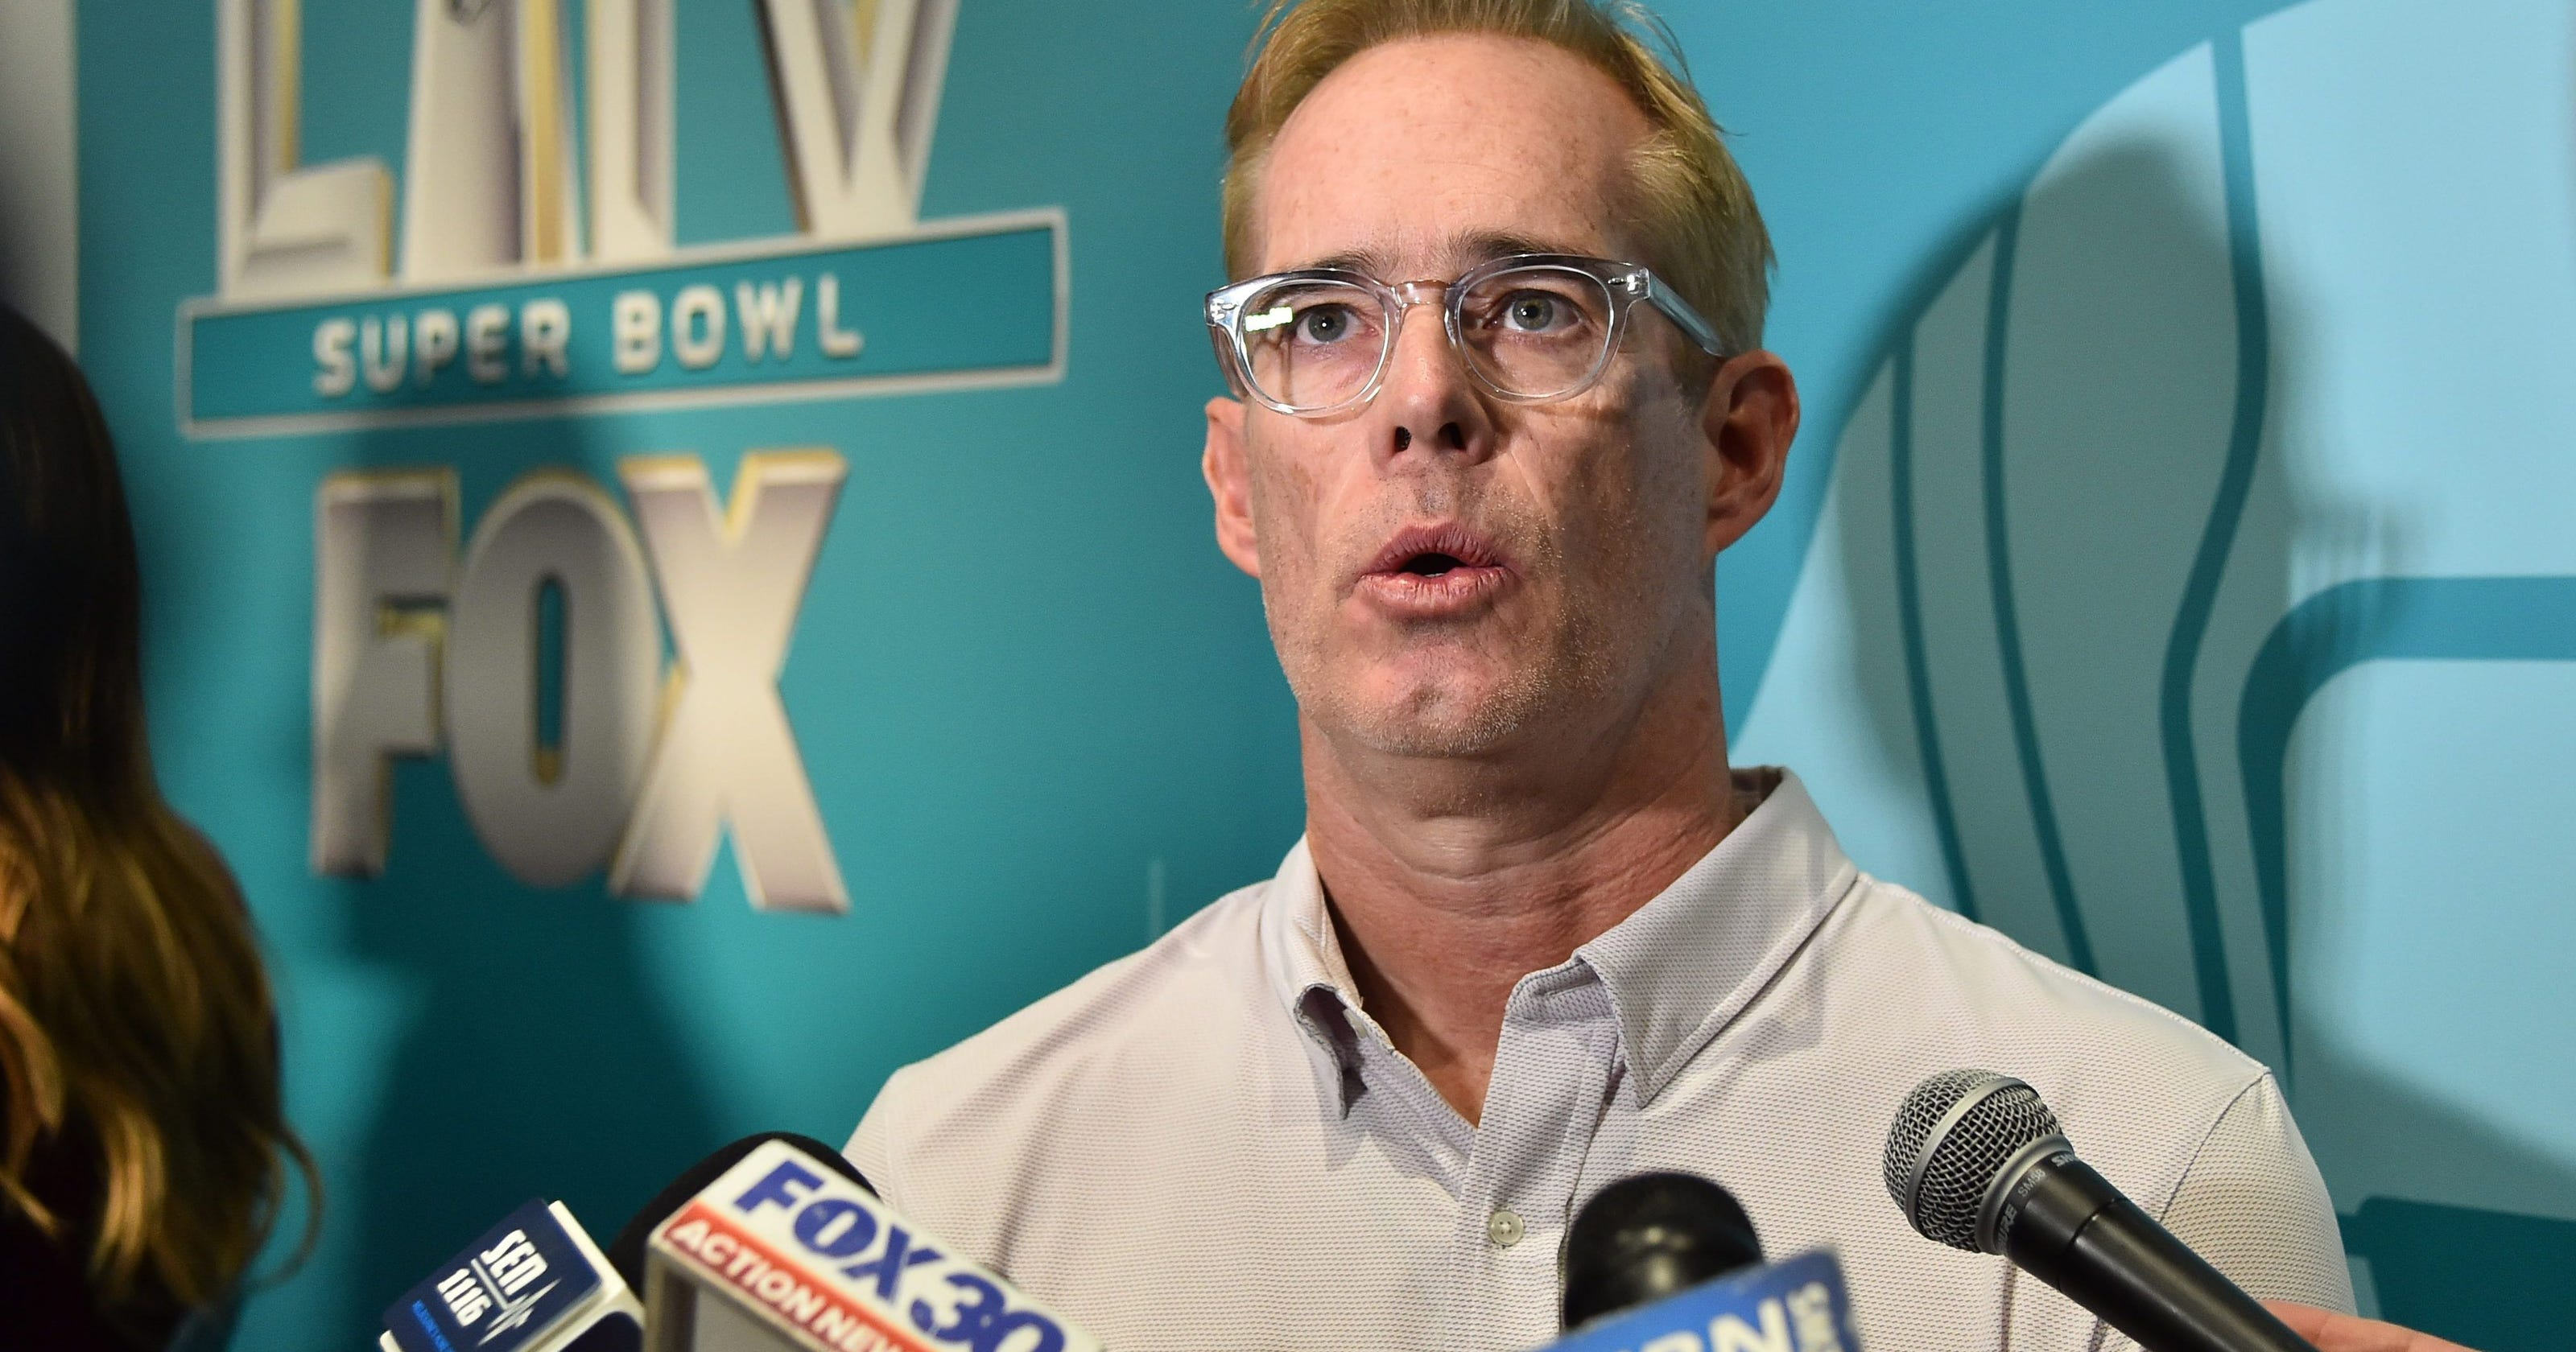 Joe Buck surprised by Pro Football Hall of Fame selection during live broadcast